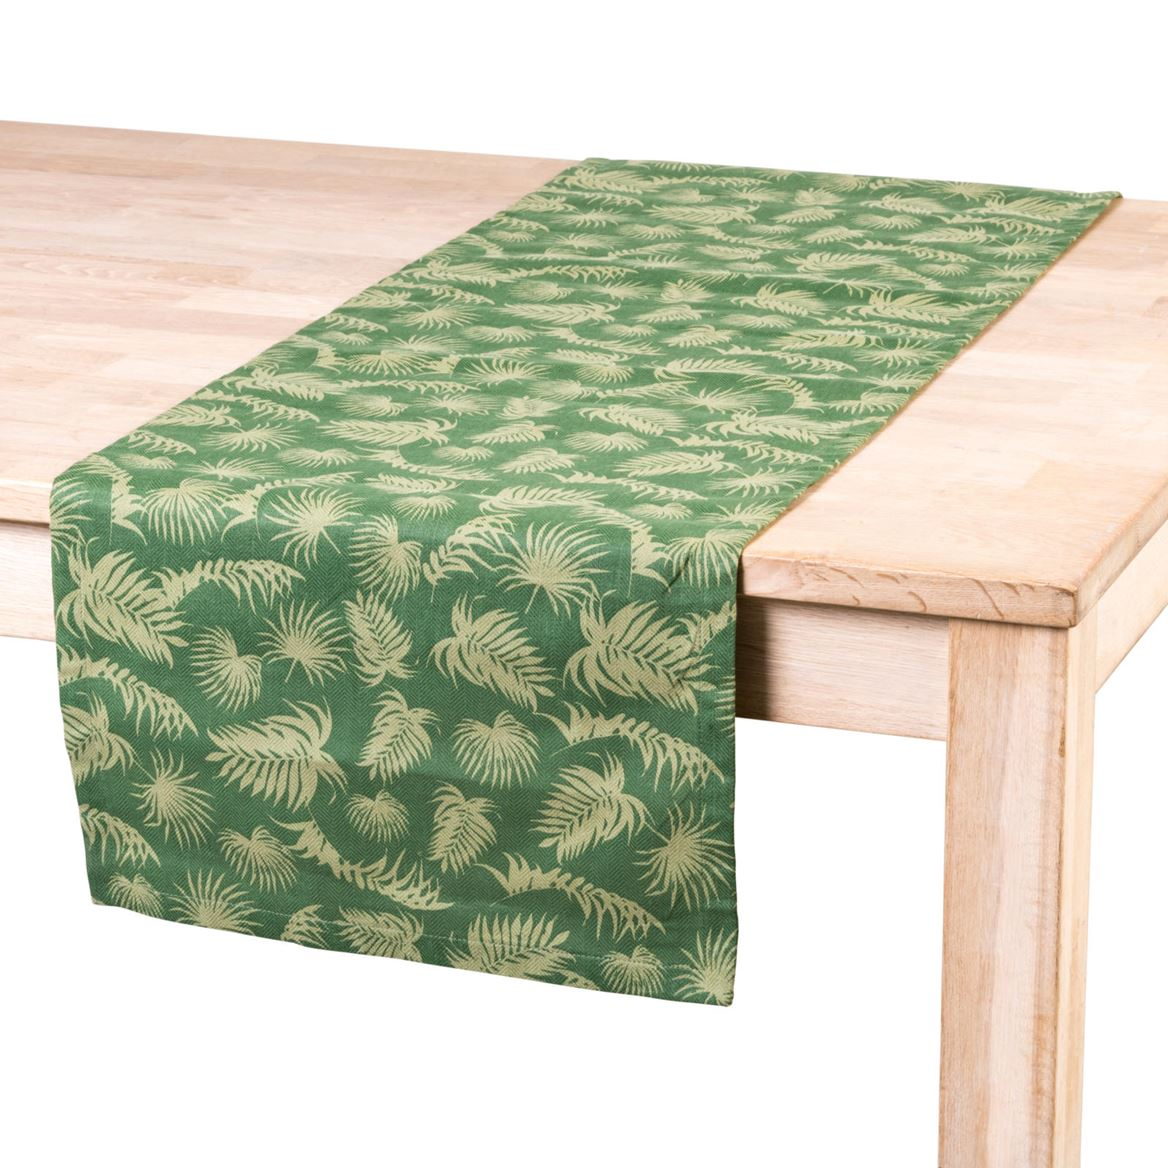 PALM LEAF Chemin de table vert Larg. 40 x Long. 140 cm_palm-leaf-chemin-de-table-vert-larg--40-x-long--140-cm